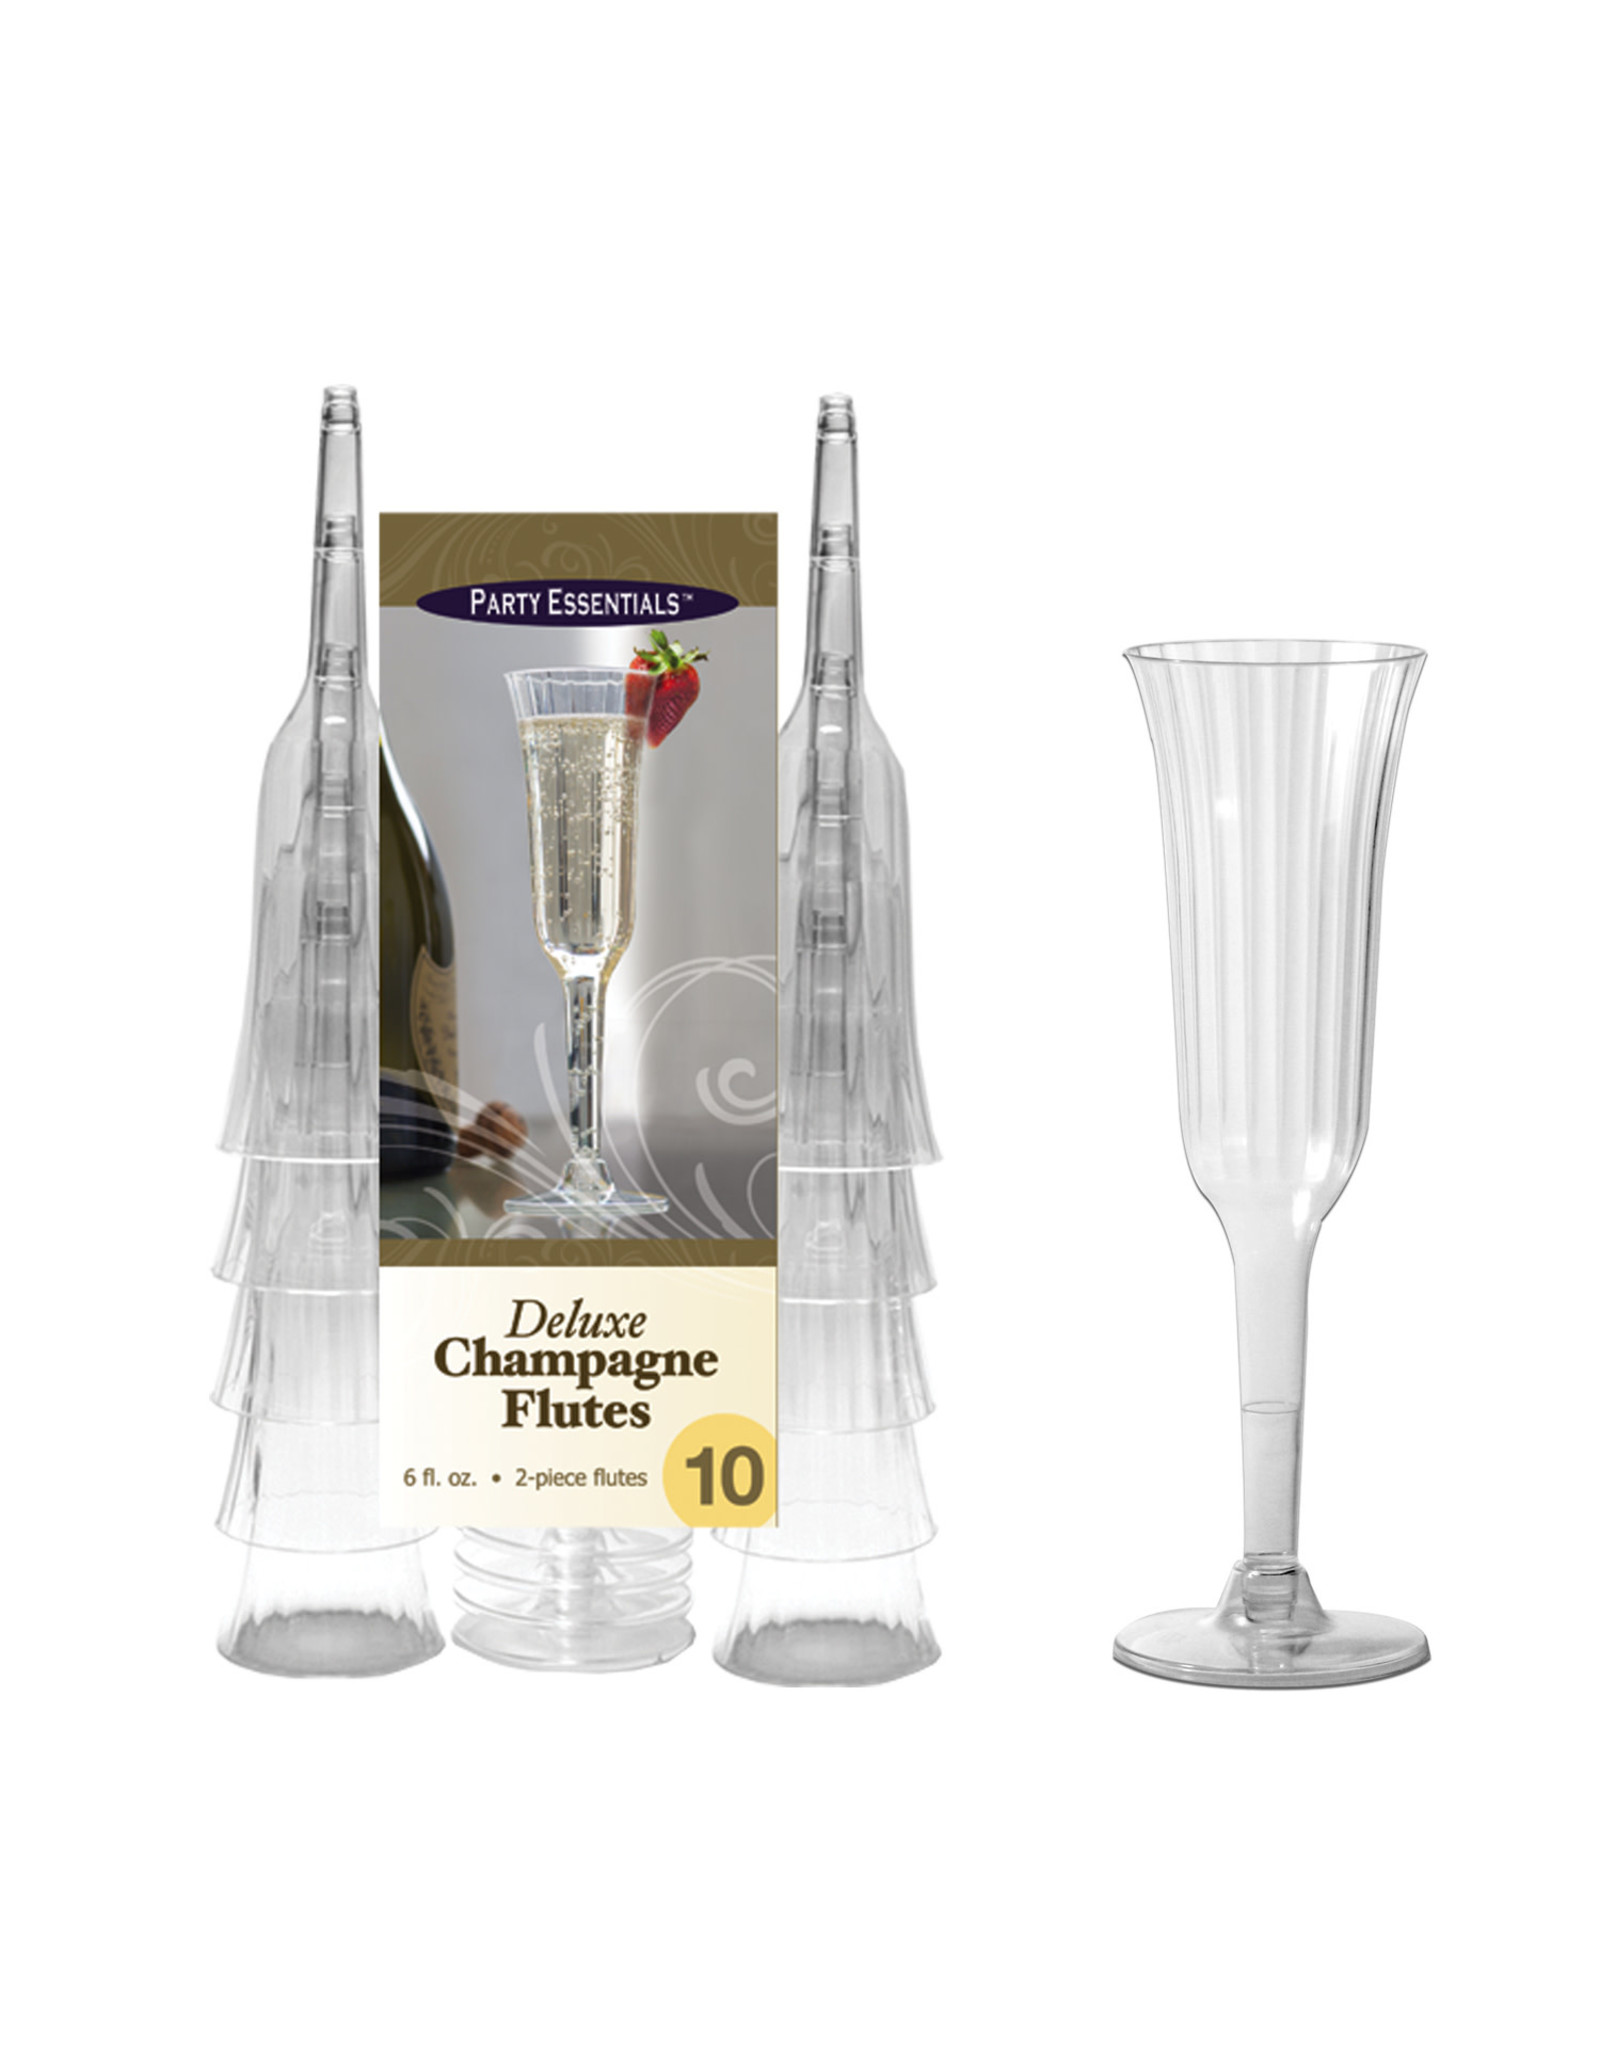 Party Essentials Deluxe Champagne Flutes - 10ct.